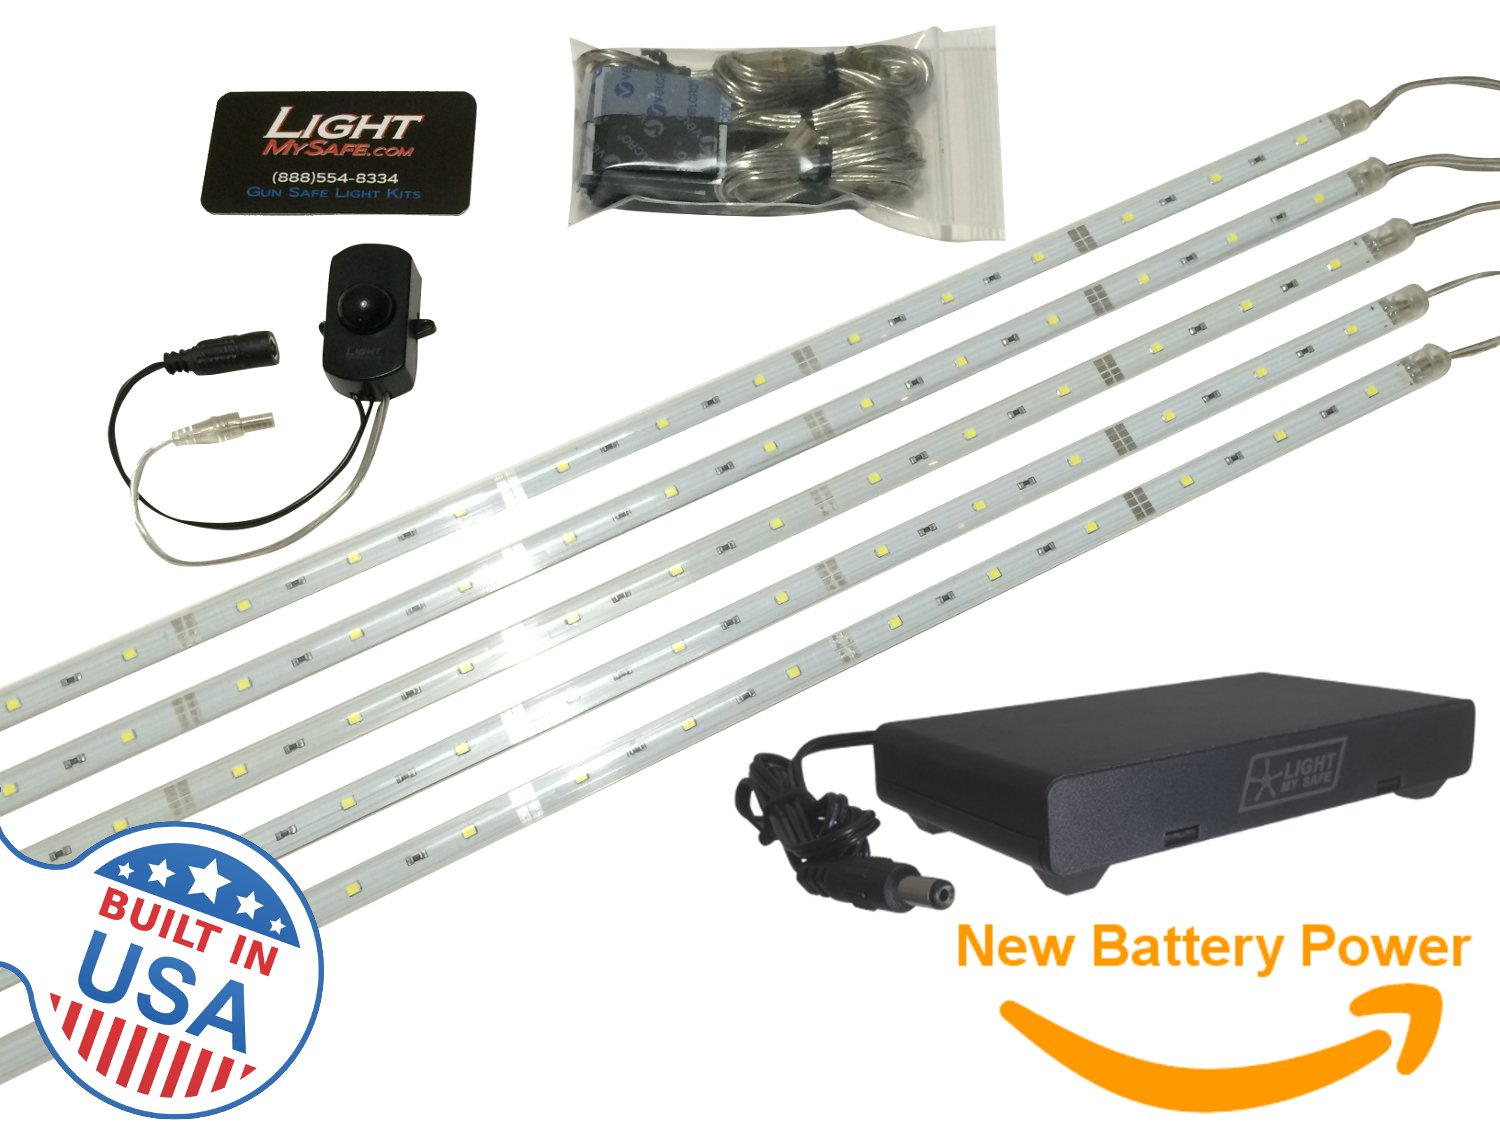 Executive Gun Safe Lighting Kit w/ Motion Switch (Battery Operated) : Tactical Grade American Lights - 2,250 Total Lumens